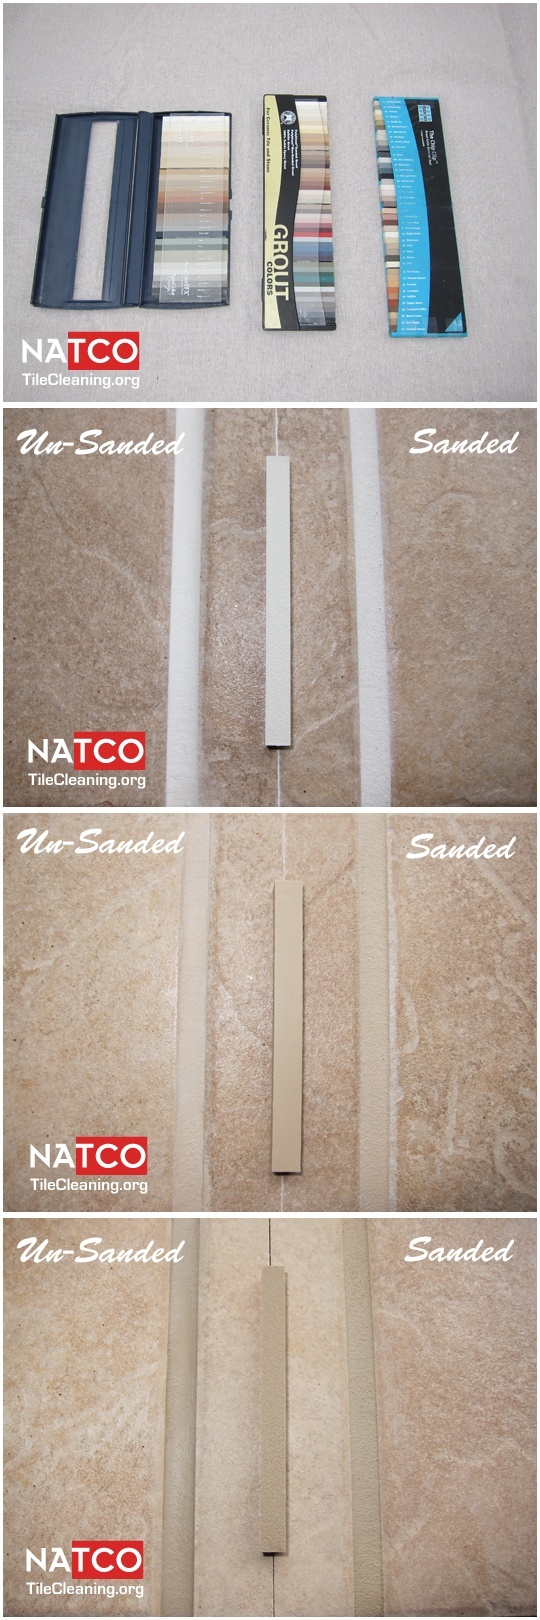 Differences between sanded and un-sanded grout.